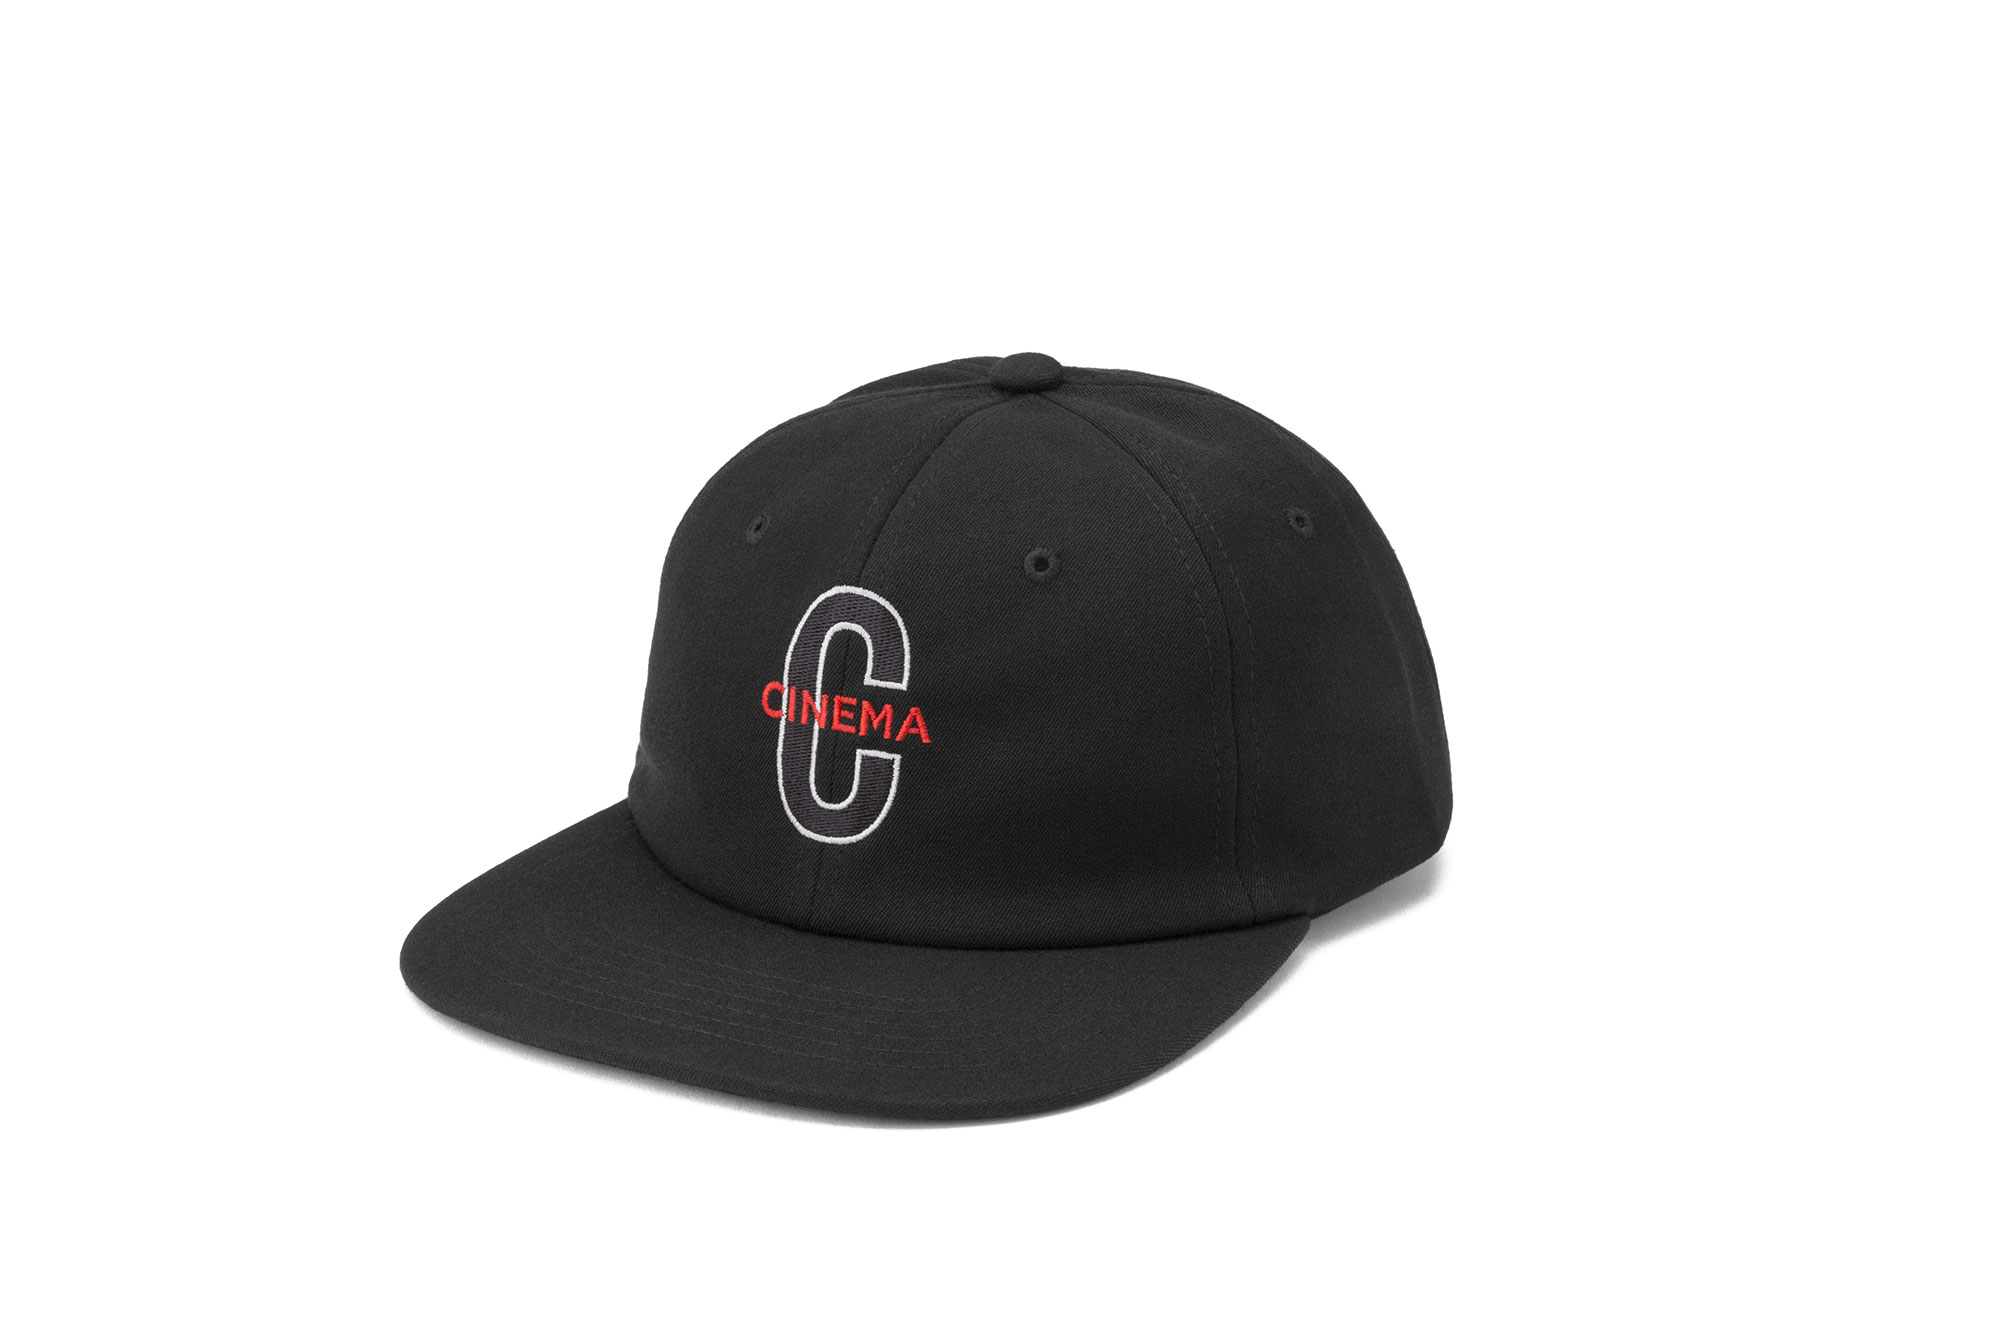 Cinema Capital C Hat Black